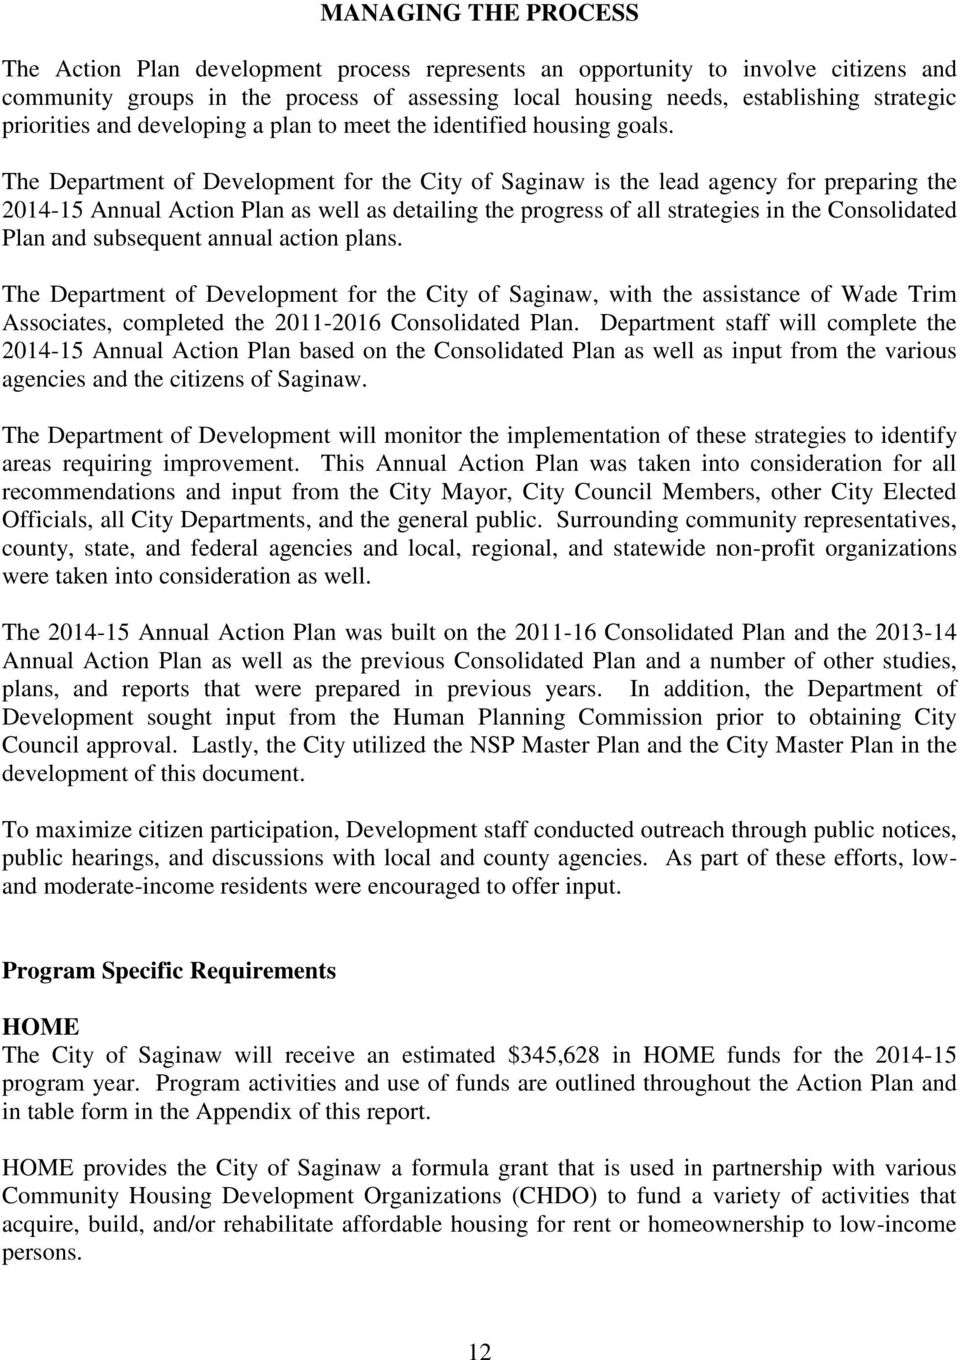 The Department of Development for the City of Saginaw is the lead agency for preparing the 2014-15 Annual Action Plan as well as detailing the progress of all strategies in the Consolidated Plan and